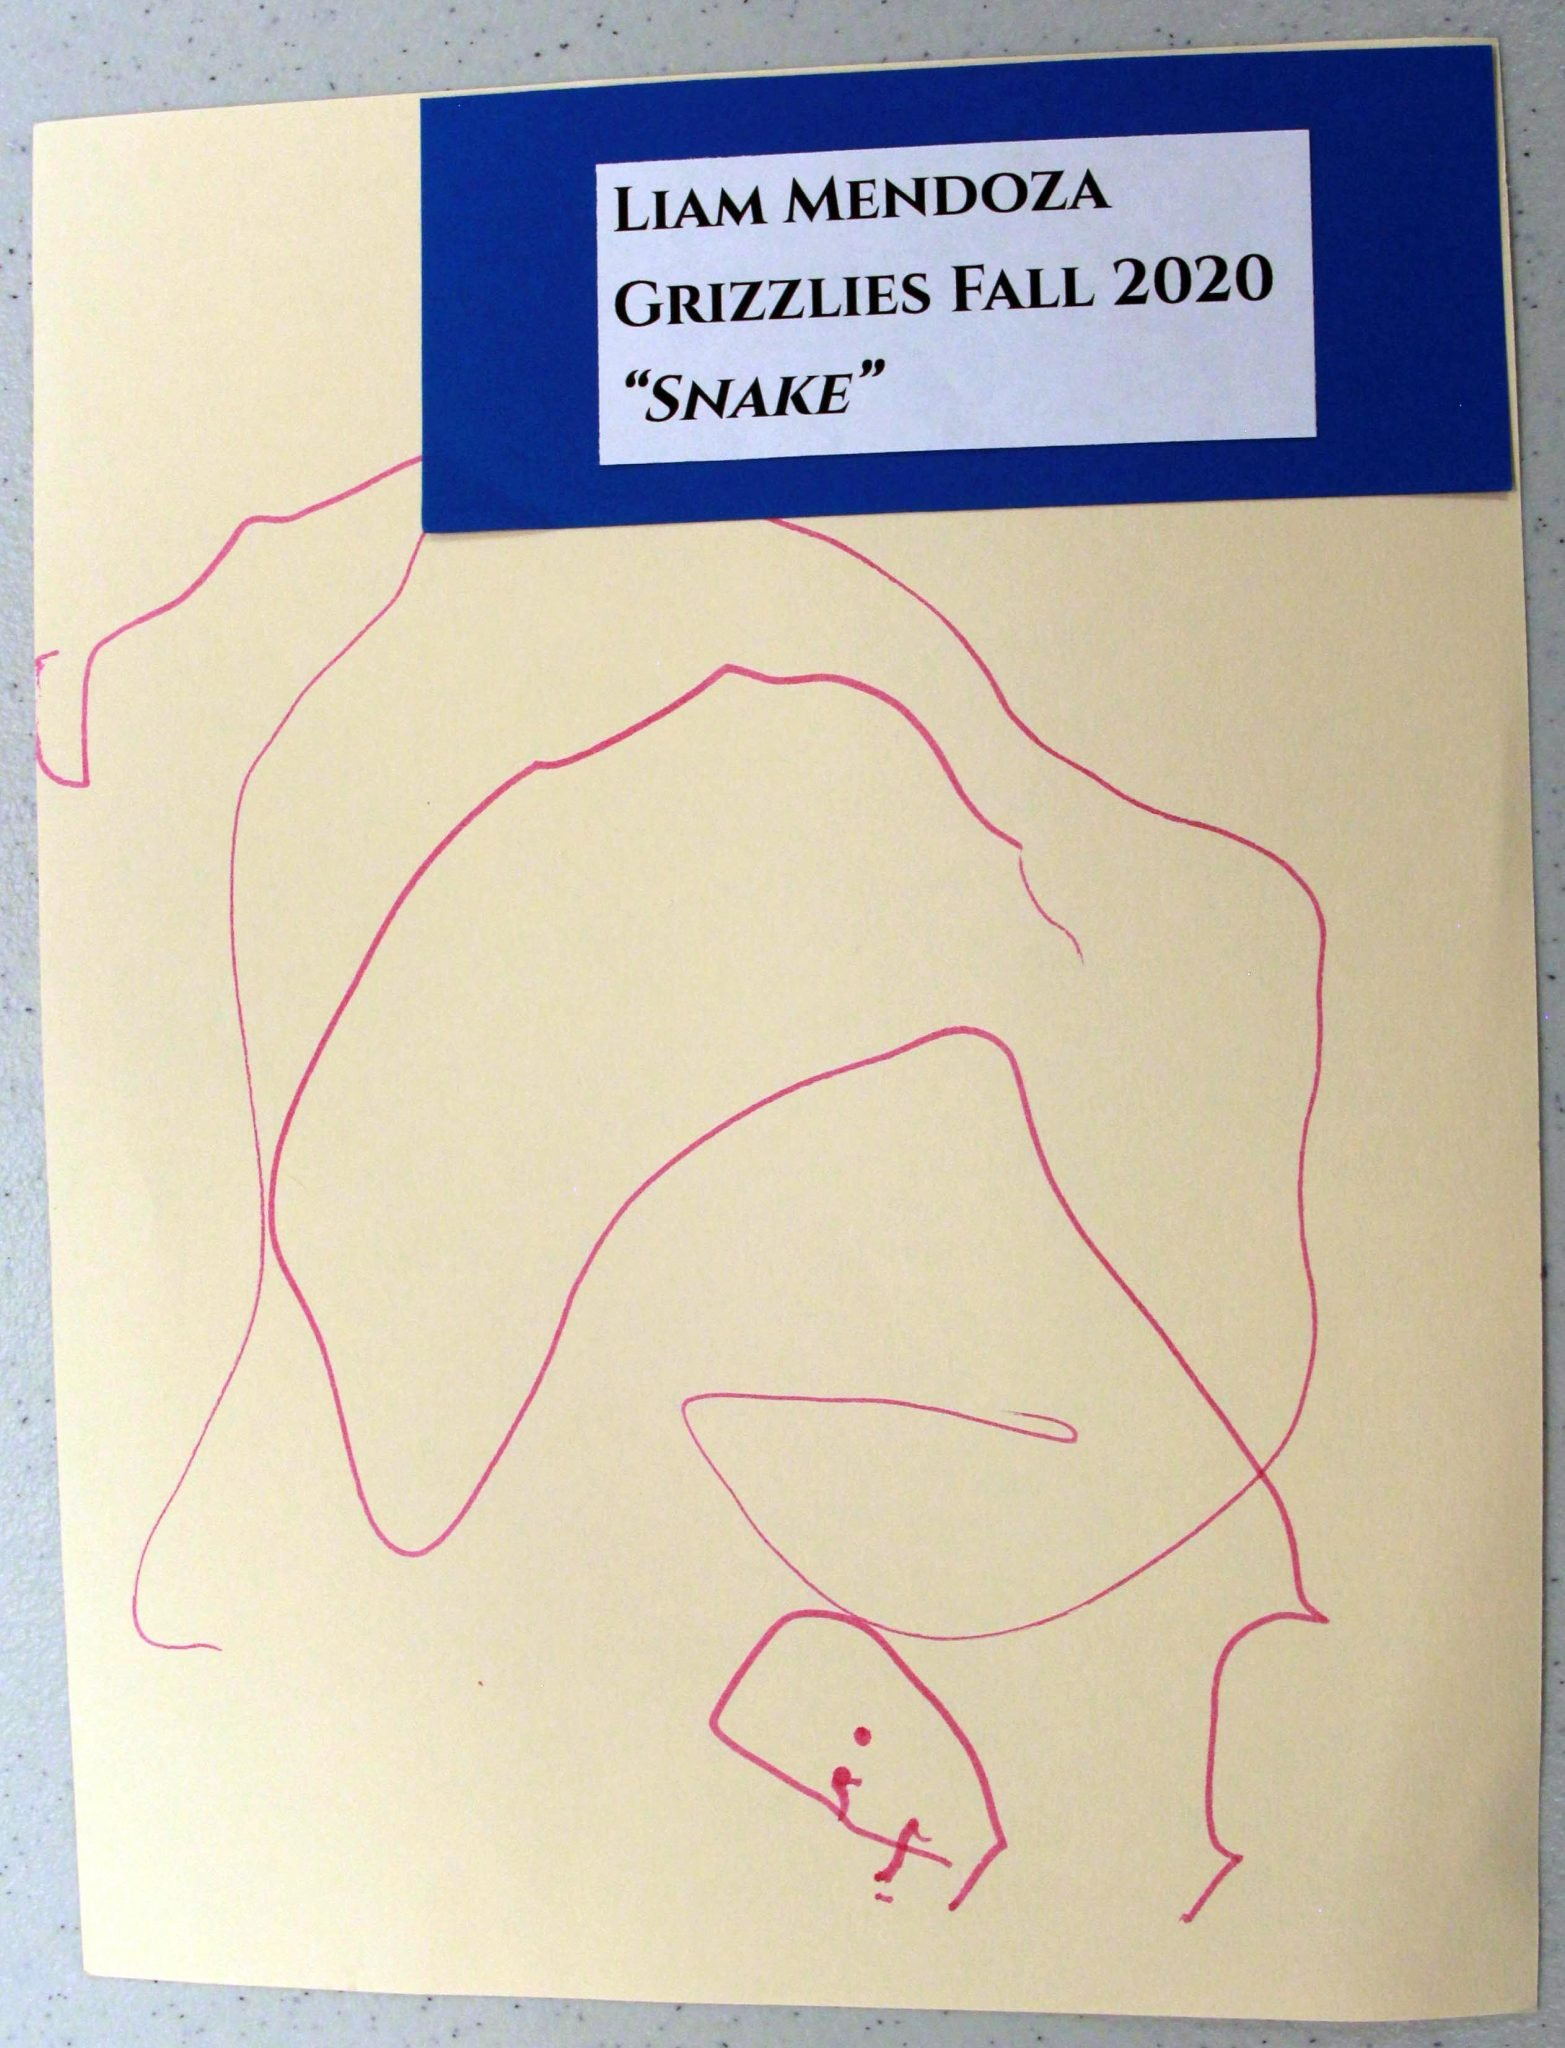 Liam Mendoza, of Grizzlies group, drawing, Fall 2020